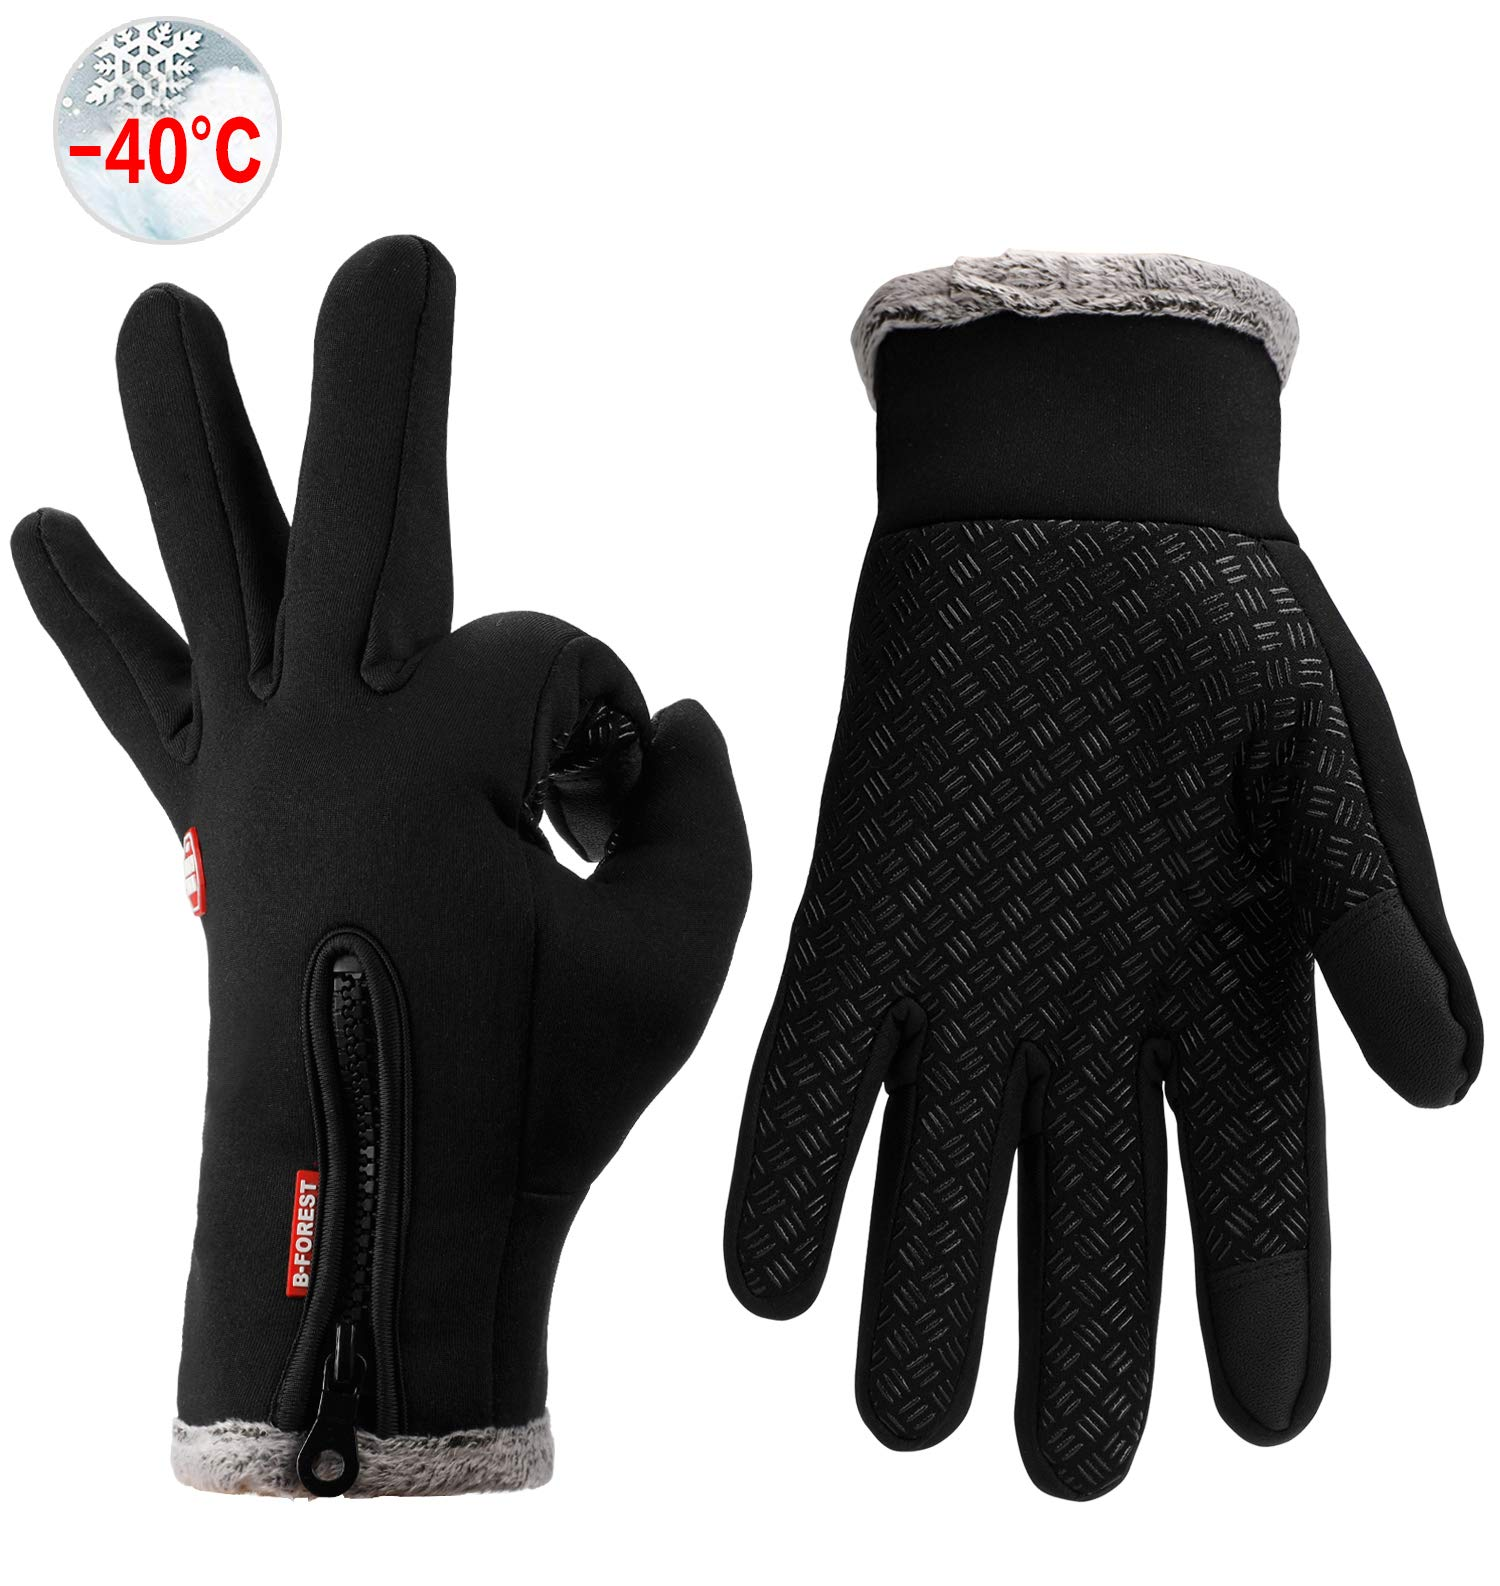 Tendaisy Gogomore Warm Thermal Gloves Cycling Running Driving Gloves